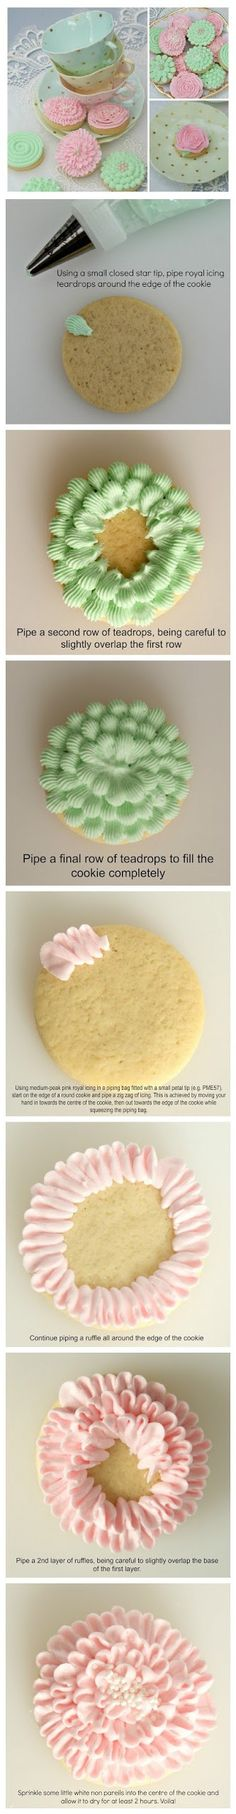 cookglee recipe pictures: Springtime Cookies